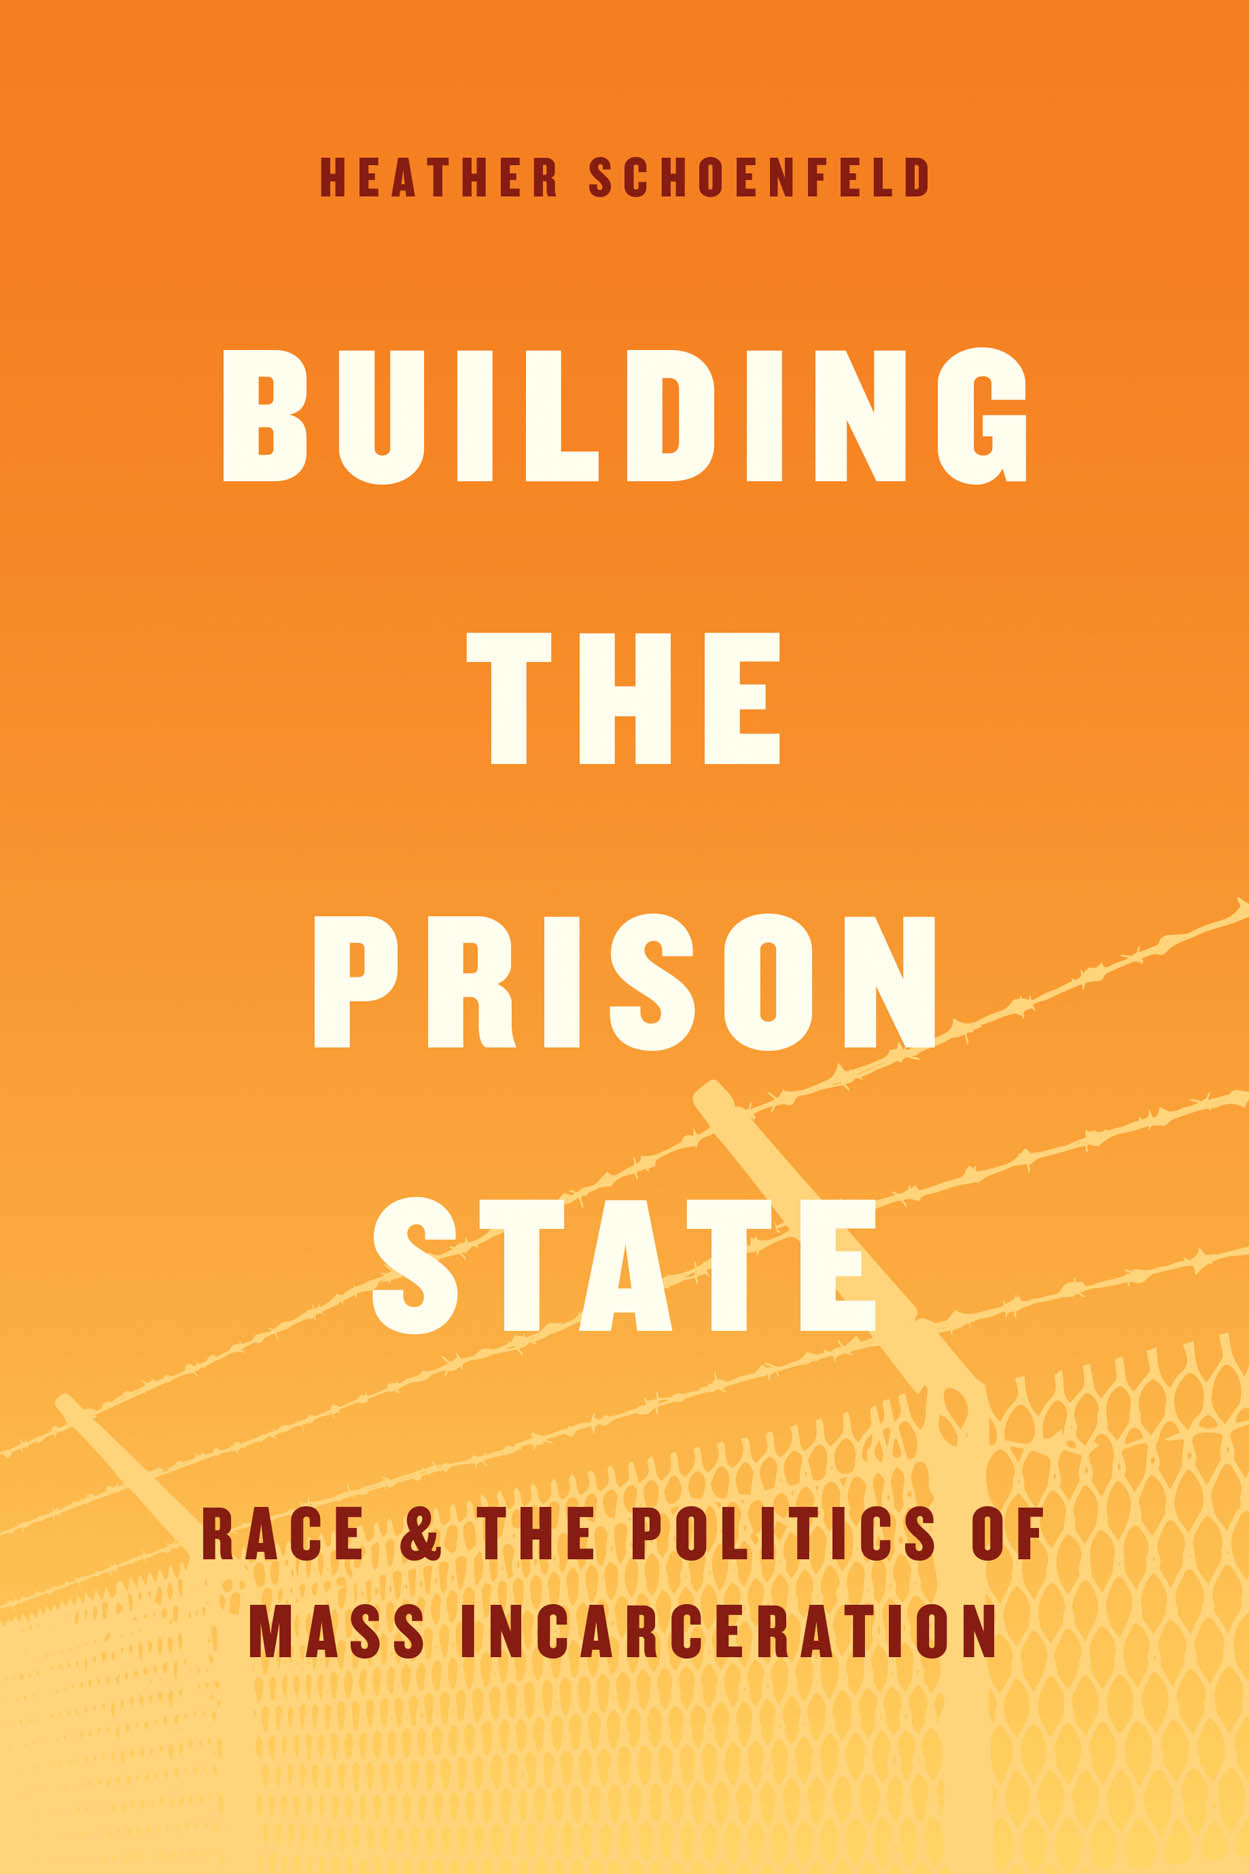 Building the Prison State: Race and the Politics of Mass Incarceration